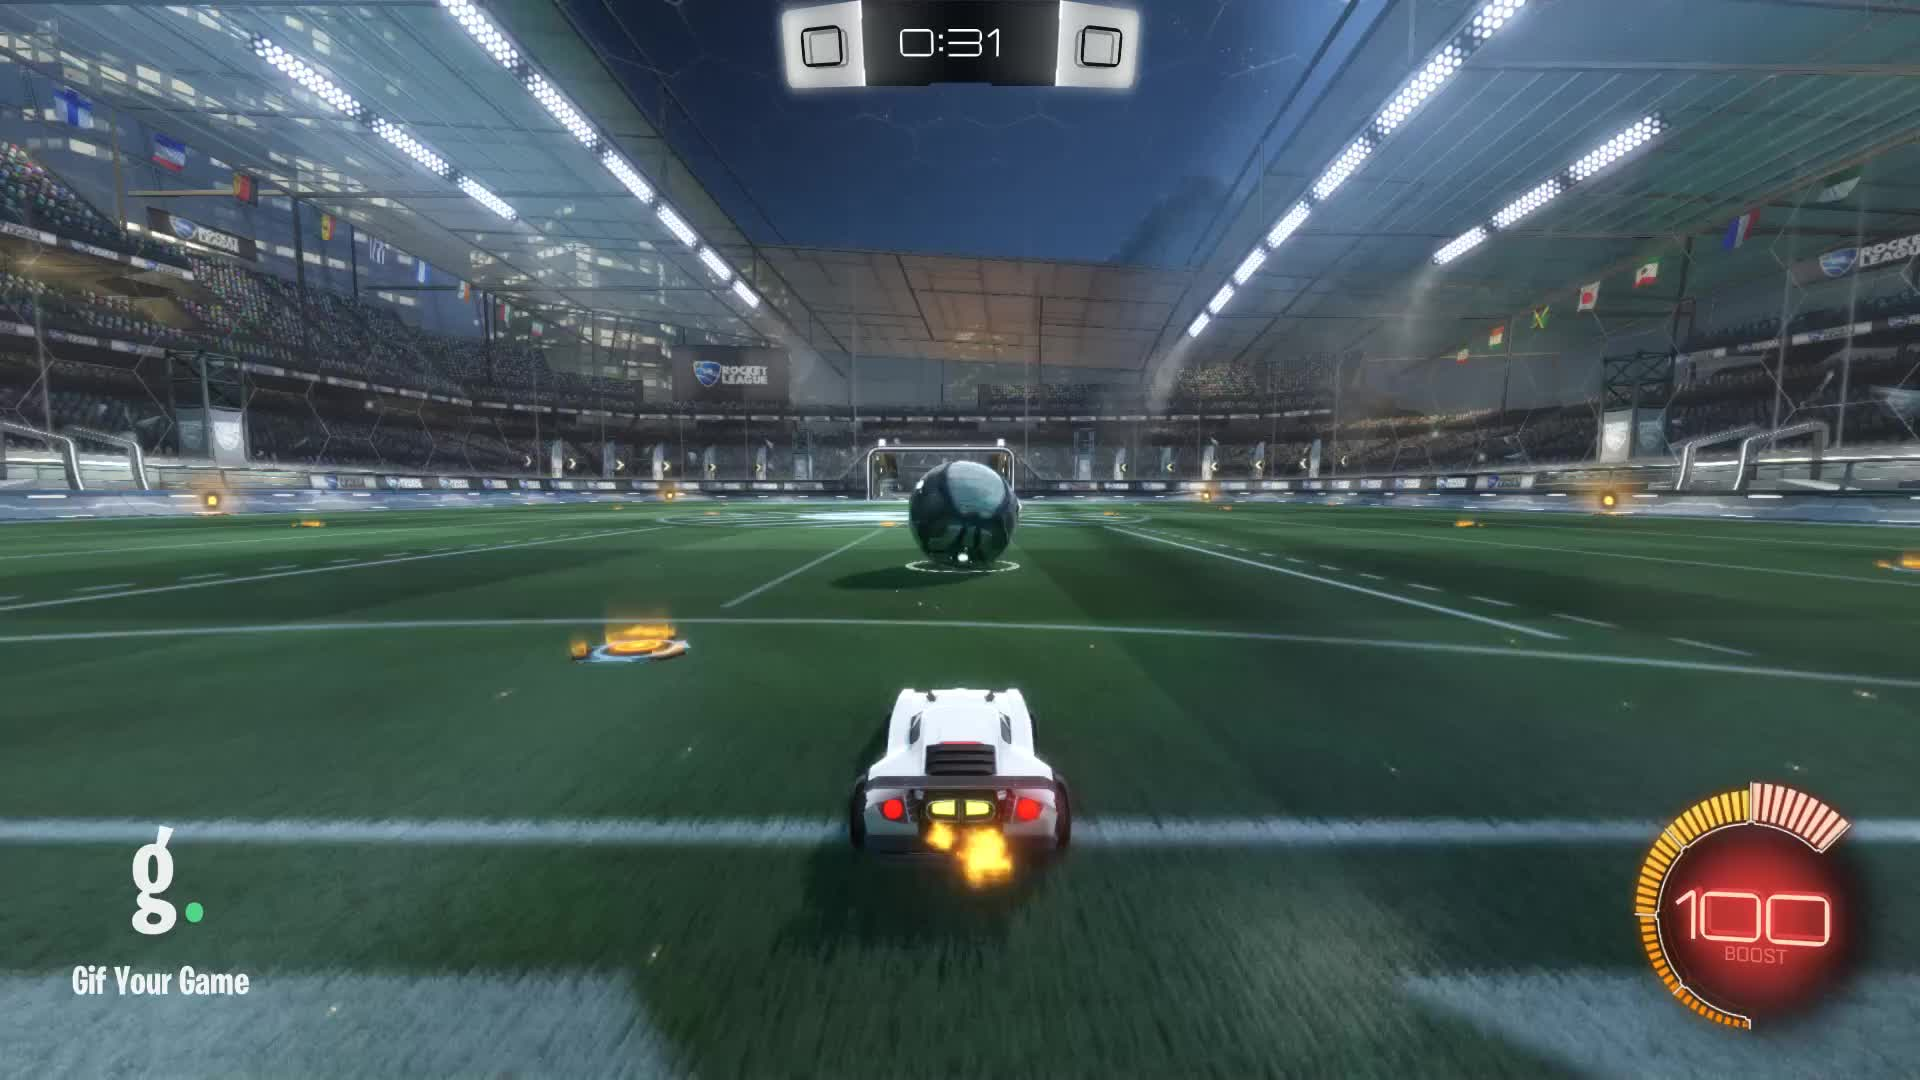 Art Piece, Gif Your Game, GifYourGame, Goal, Rocket League, RocketLeague, Goal 1: Art Piece GIFs